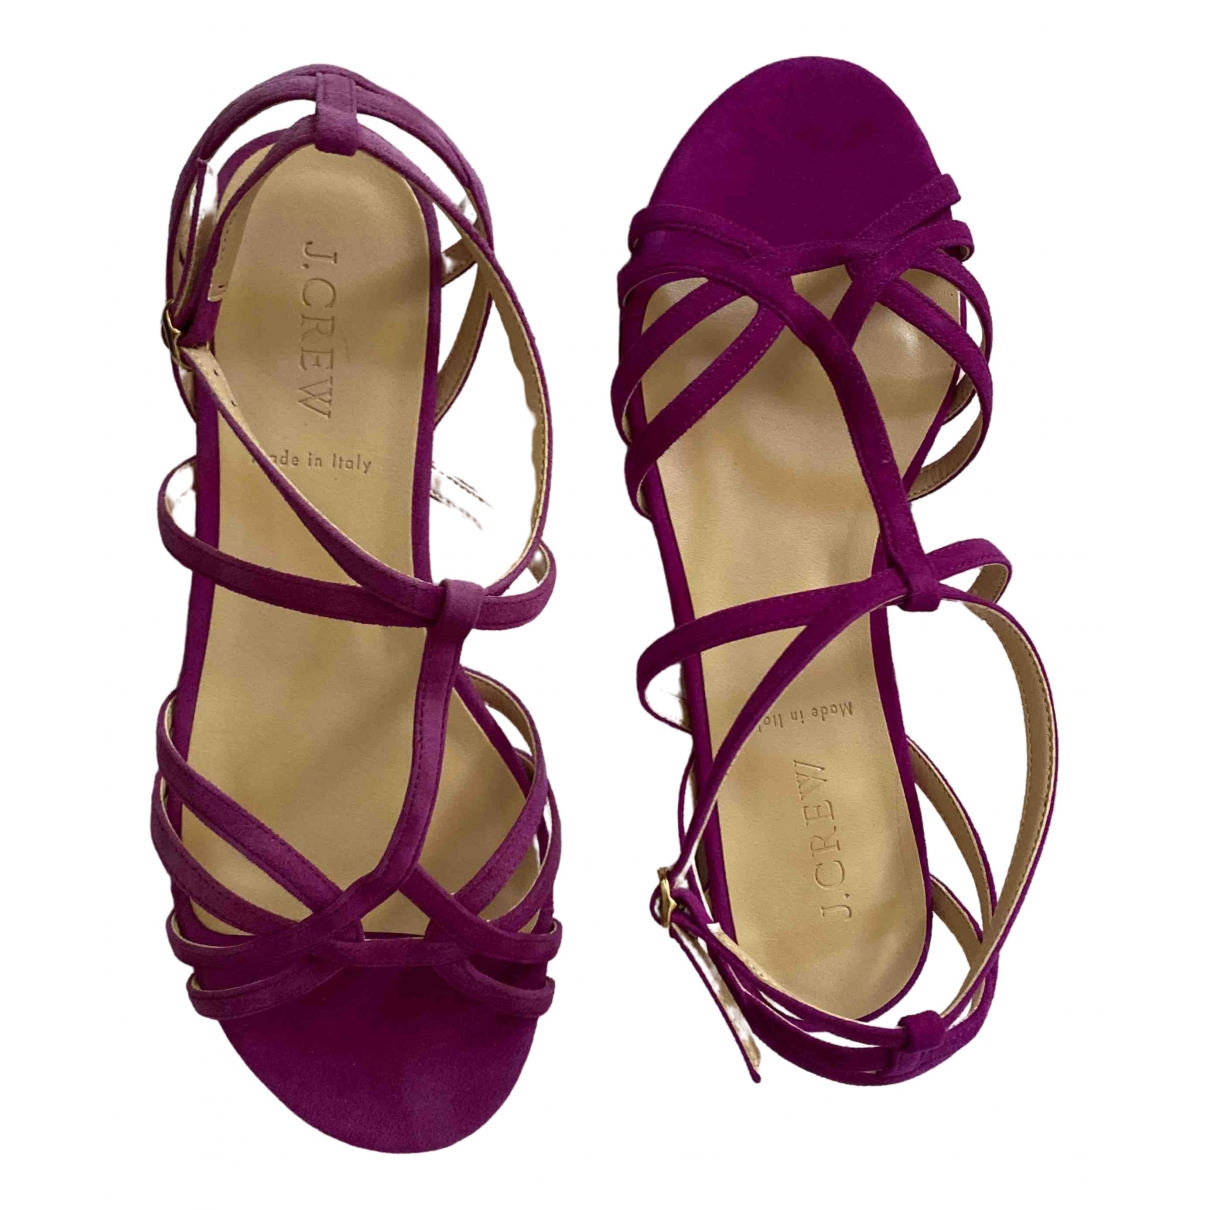 J.crew \N Purple Leather Sandals for Women 7 US